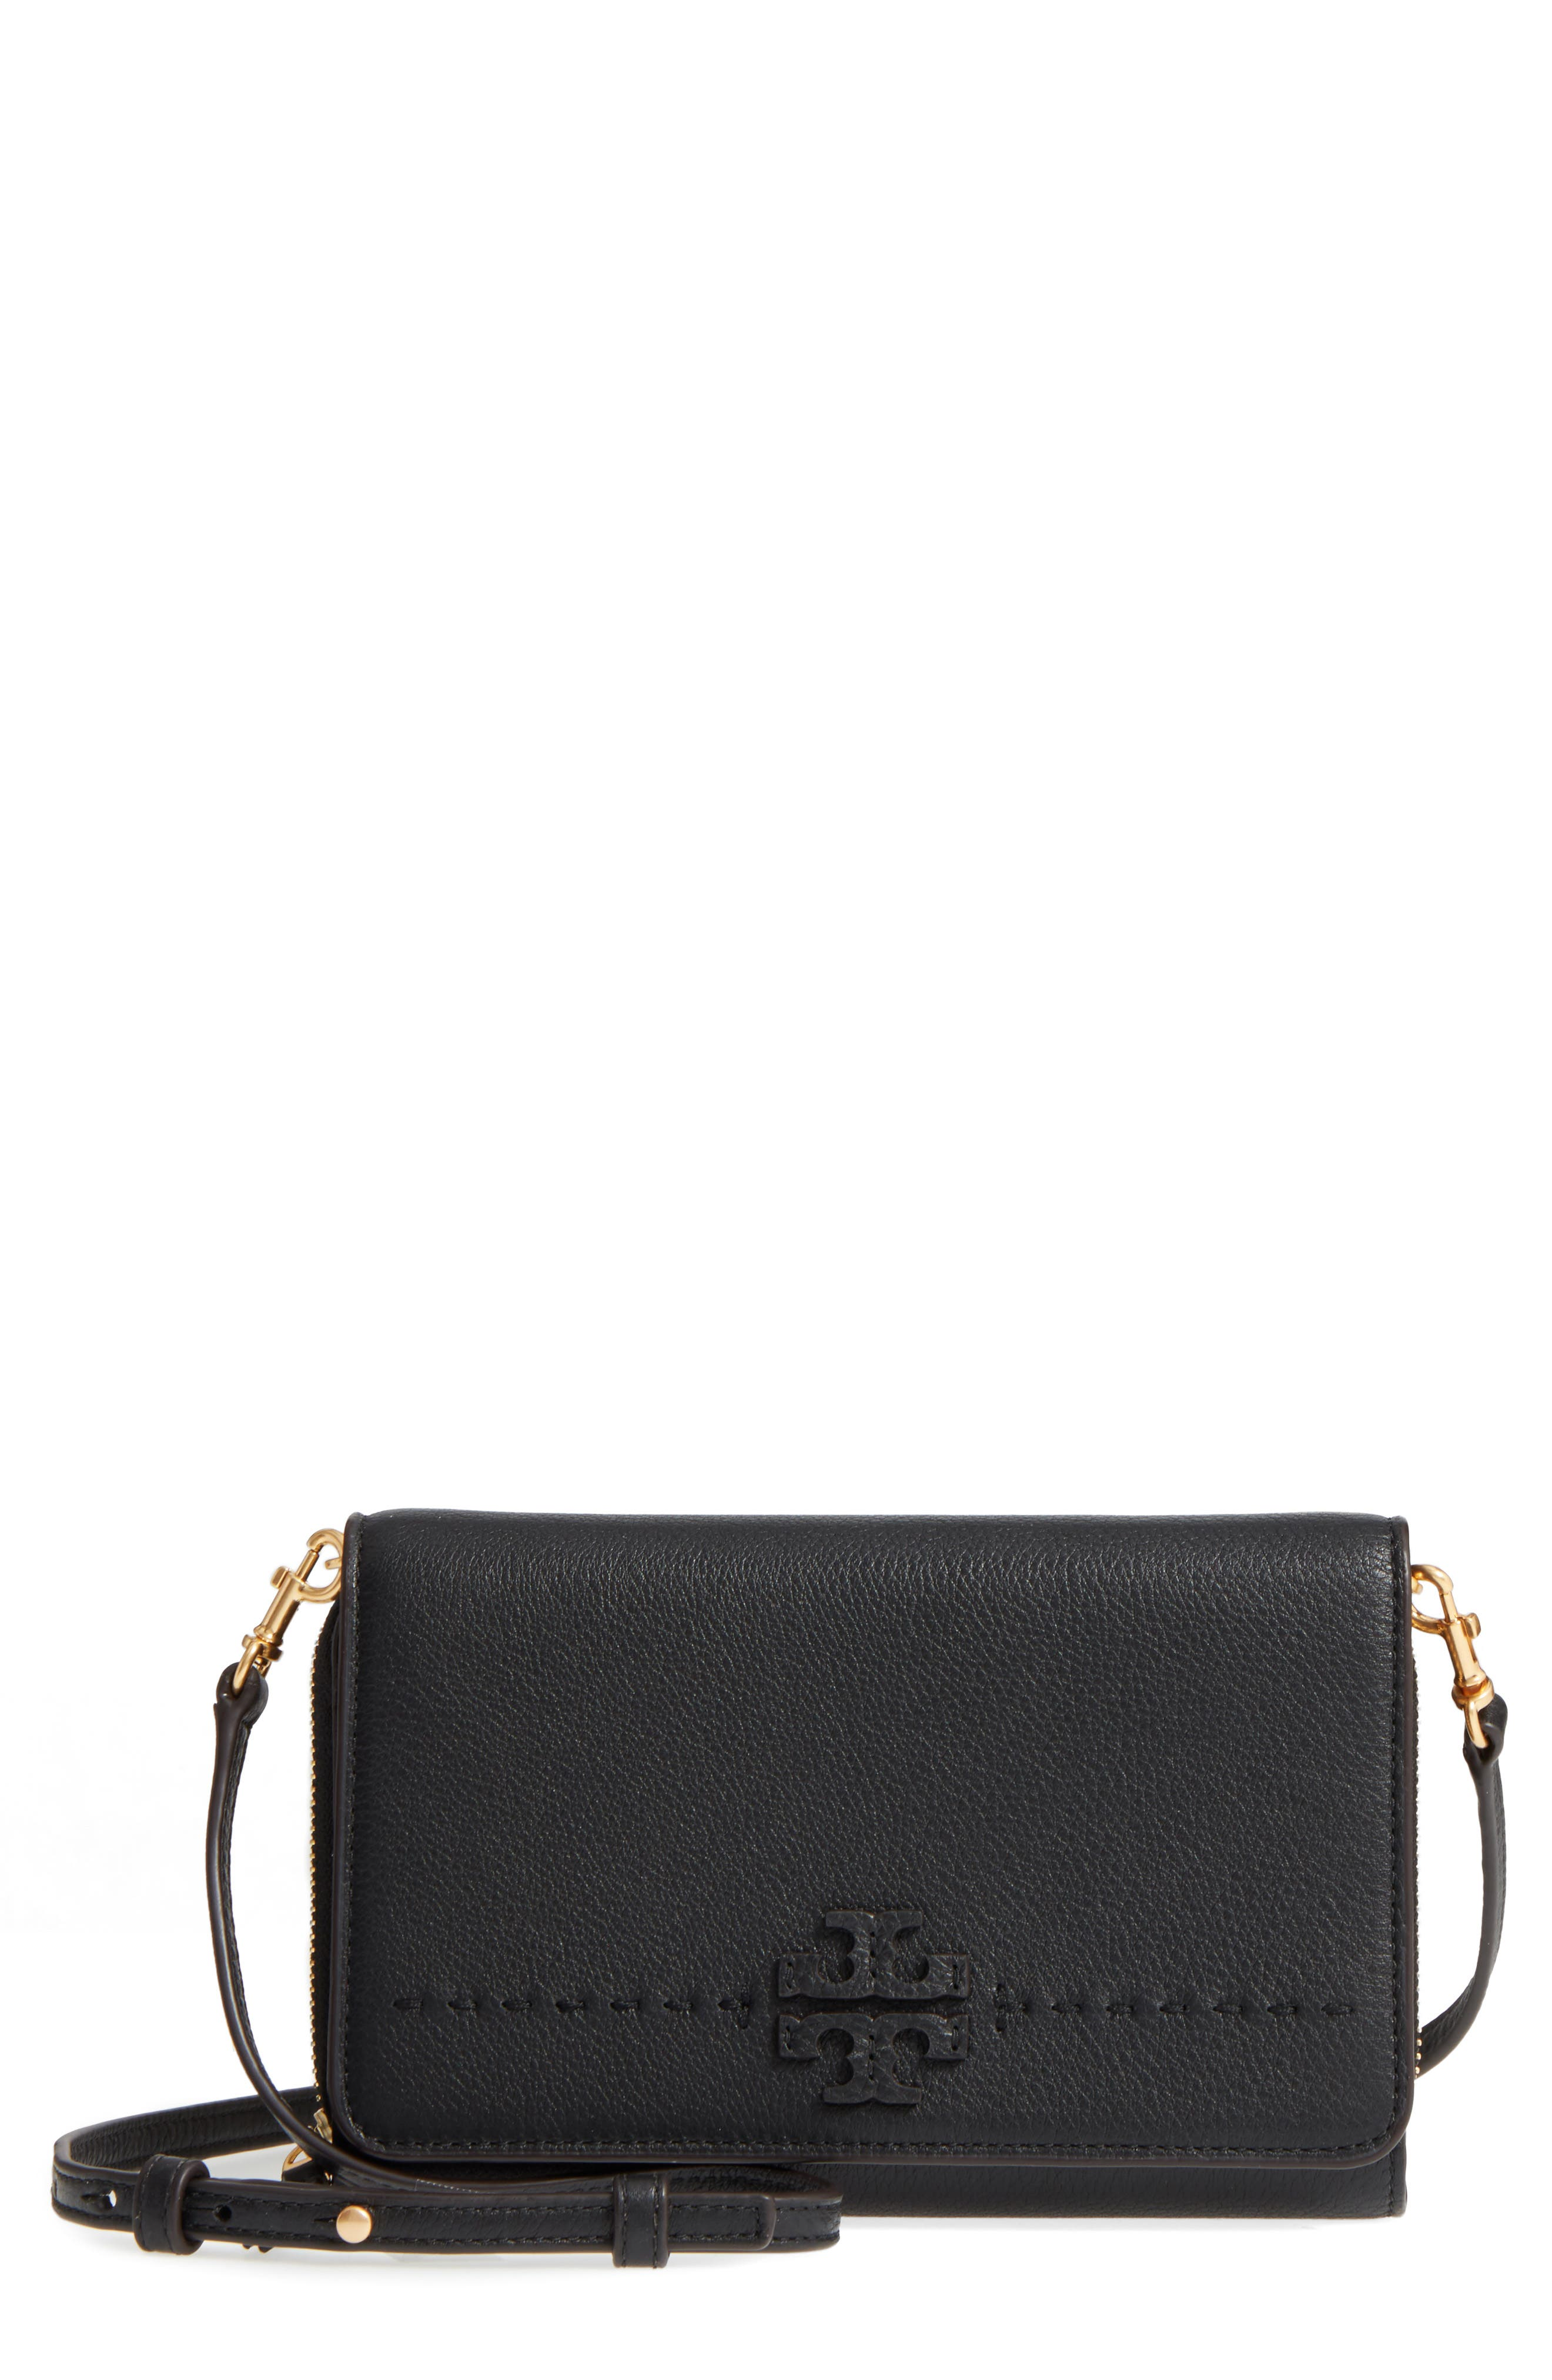 TORY BURCH McGraw Leather Crossbody Wallet, Main, color, 001